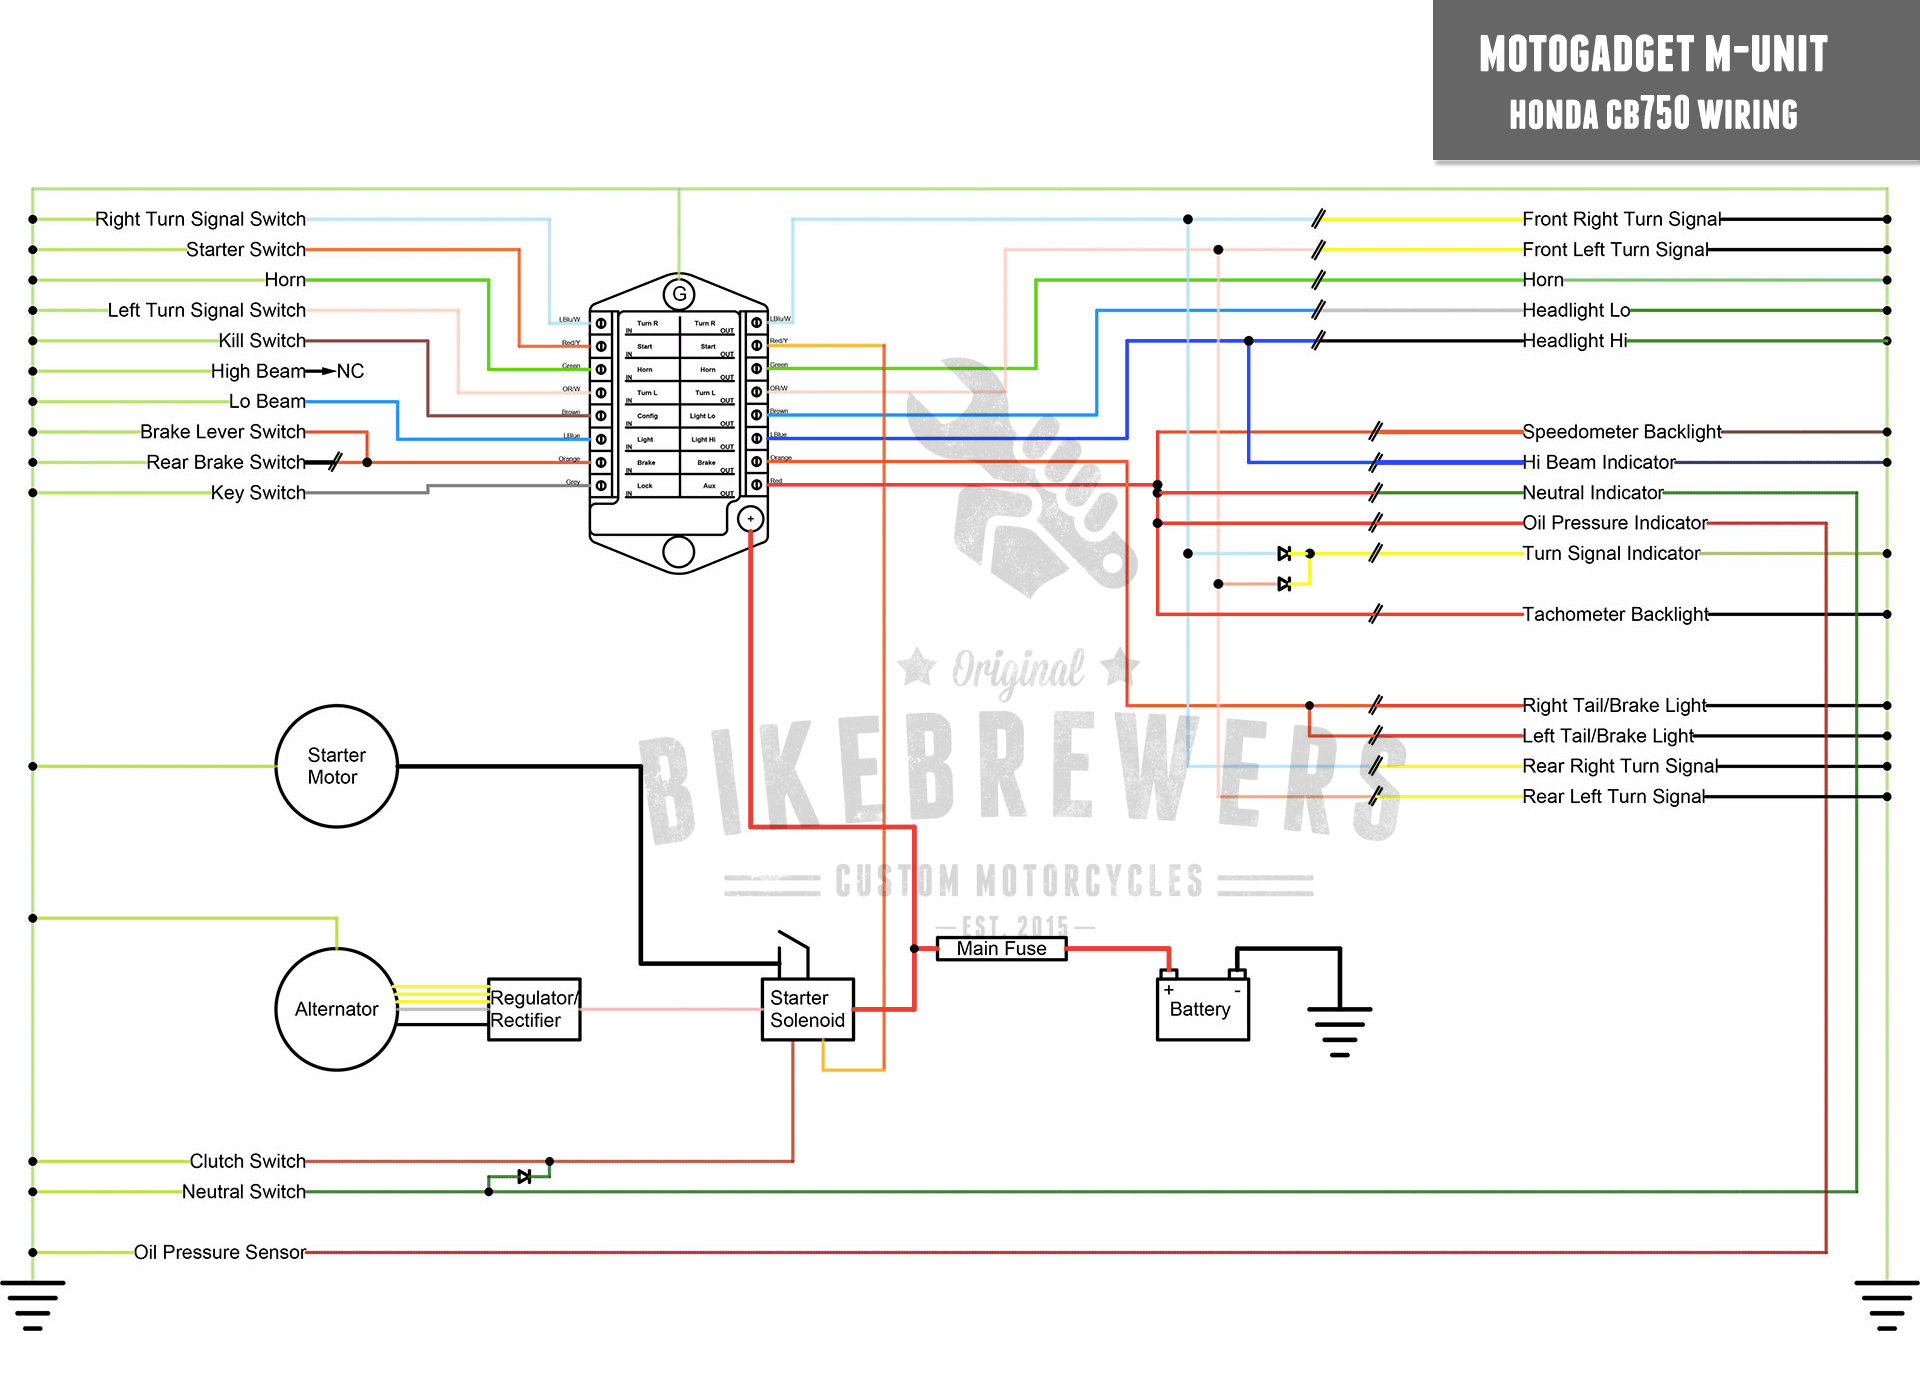 MotoGadget Wiring Honda CB750 motogadget m unit wiring bikebrewers com gs750 wiring diagram at bayanpartner.co